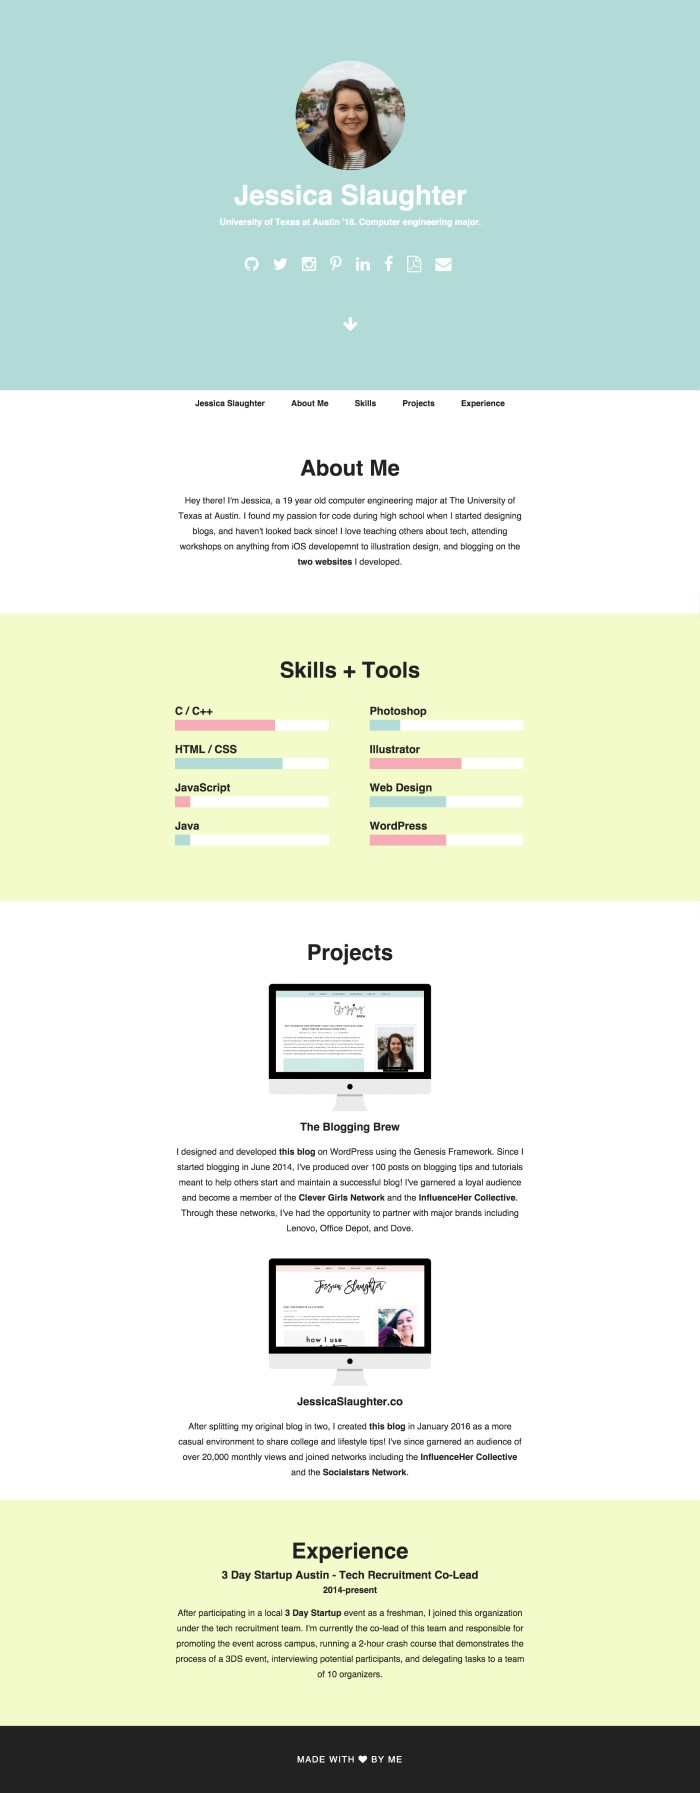 Resume Website: Jessica Slaughter from JessicaSlaughter.co